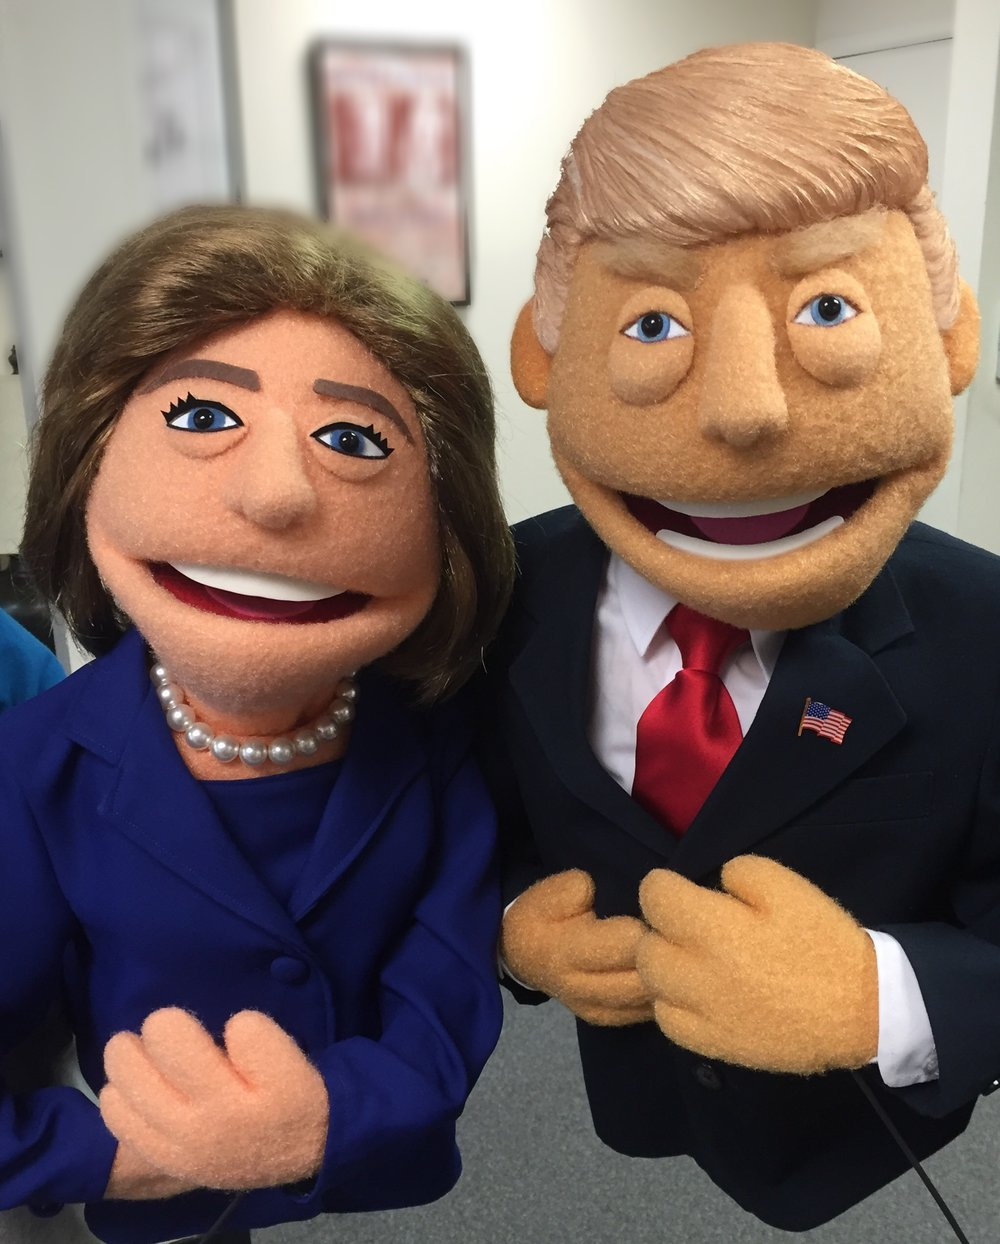 Secretary of State Hillary Clinton and Businessman Donald Trump, as represented by the puppetry team behind the hit Broadway musical Avenue Q. Puppets created for a mock presidential debate by Rick Lyon.